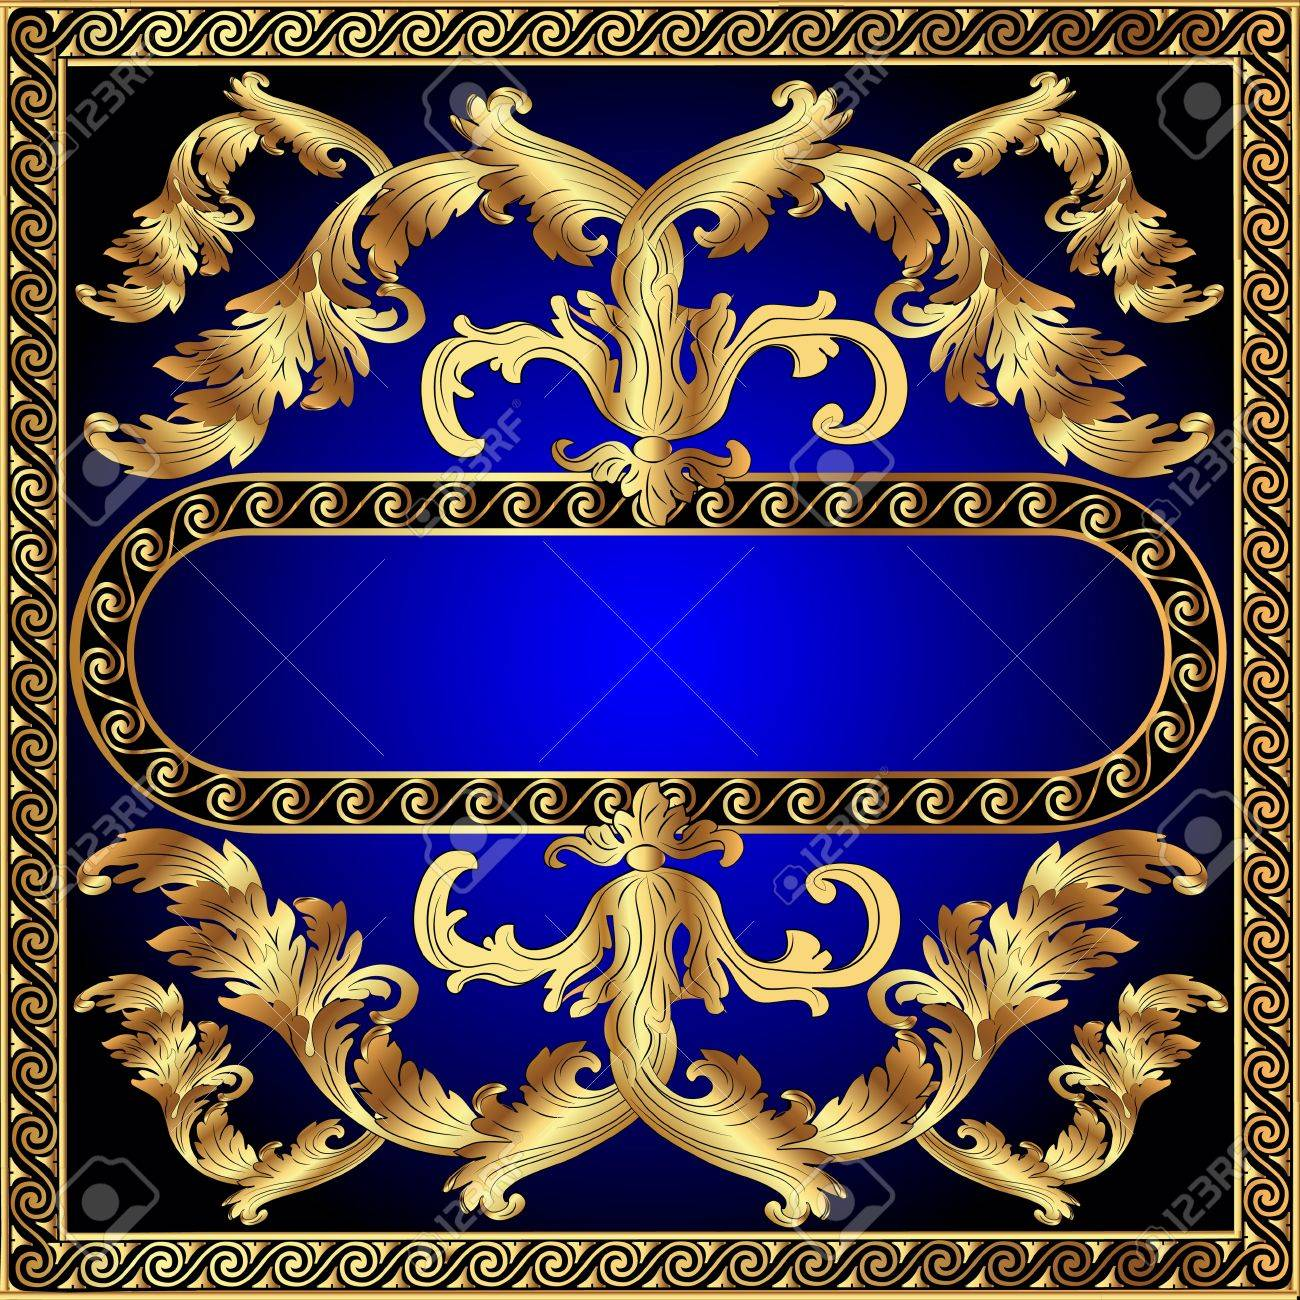 illustration gold(en) frame with vegetable and spiral by pattern Stock Vector - 11083064